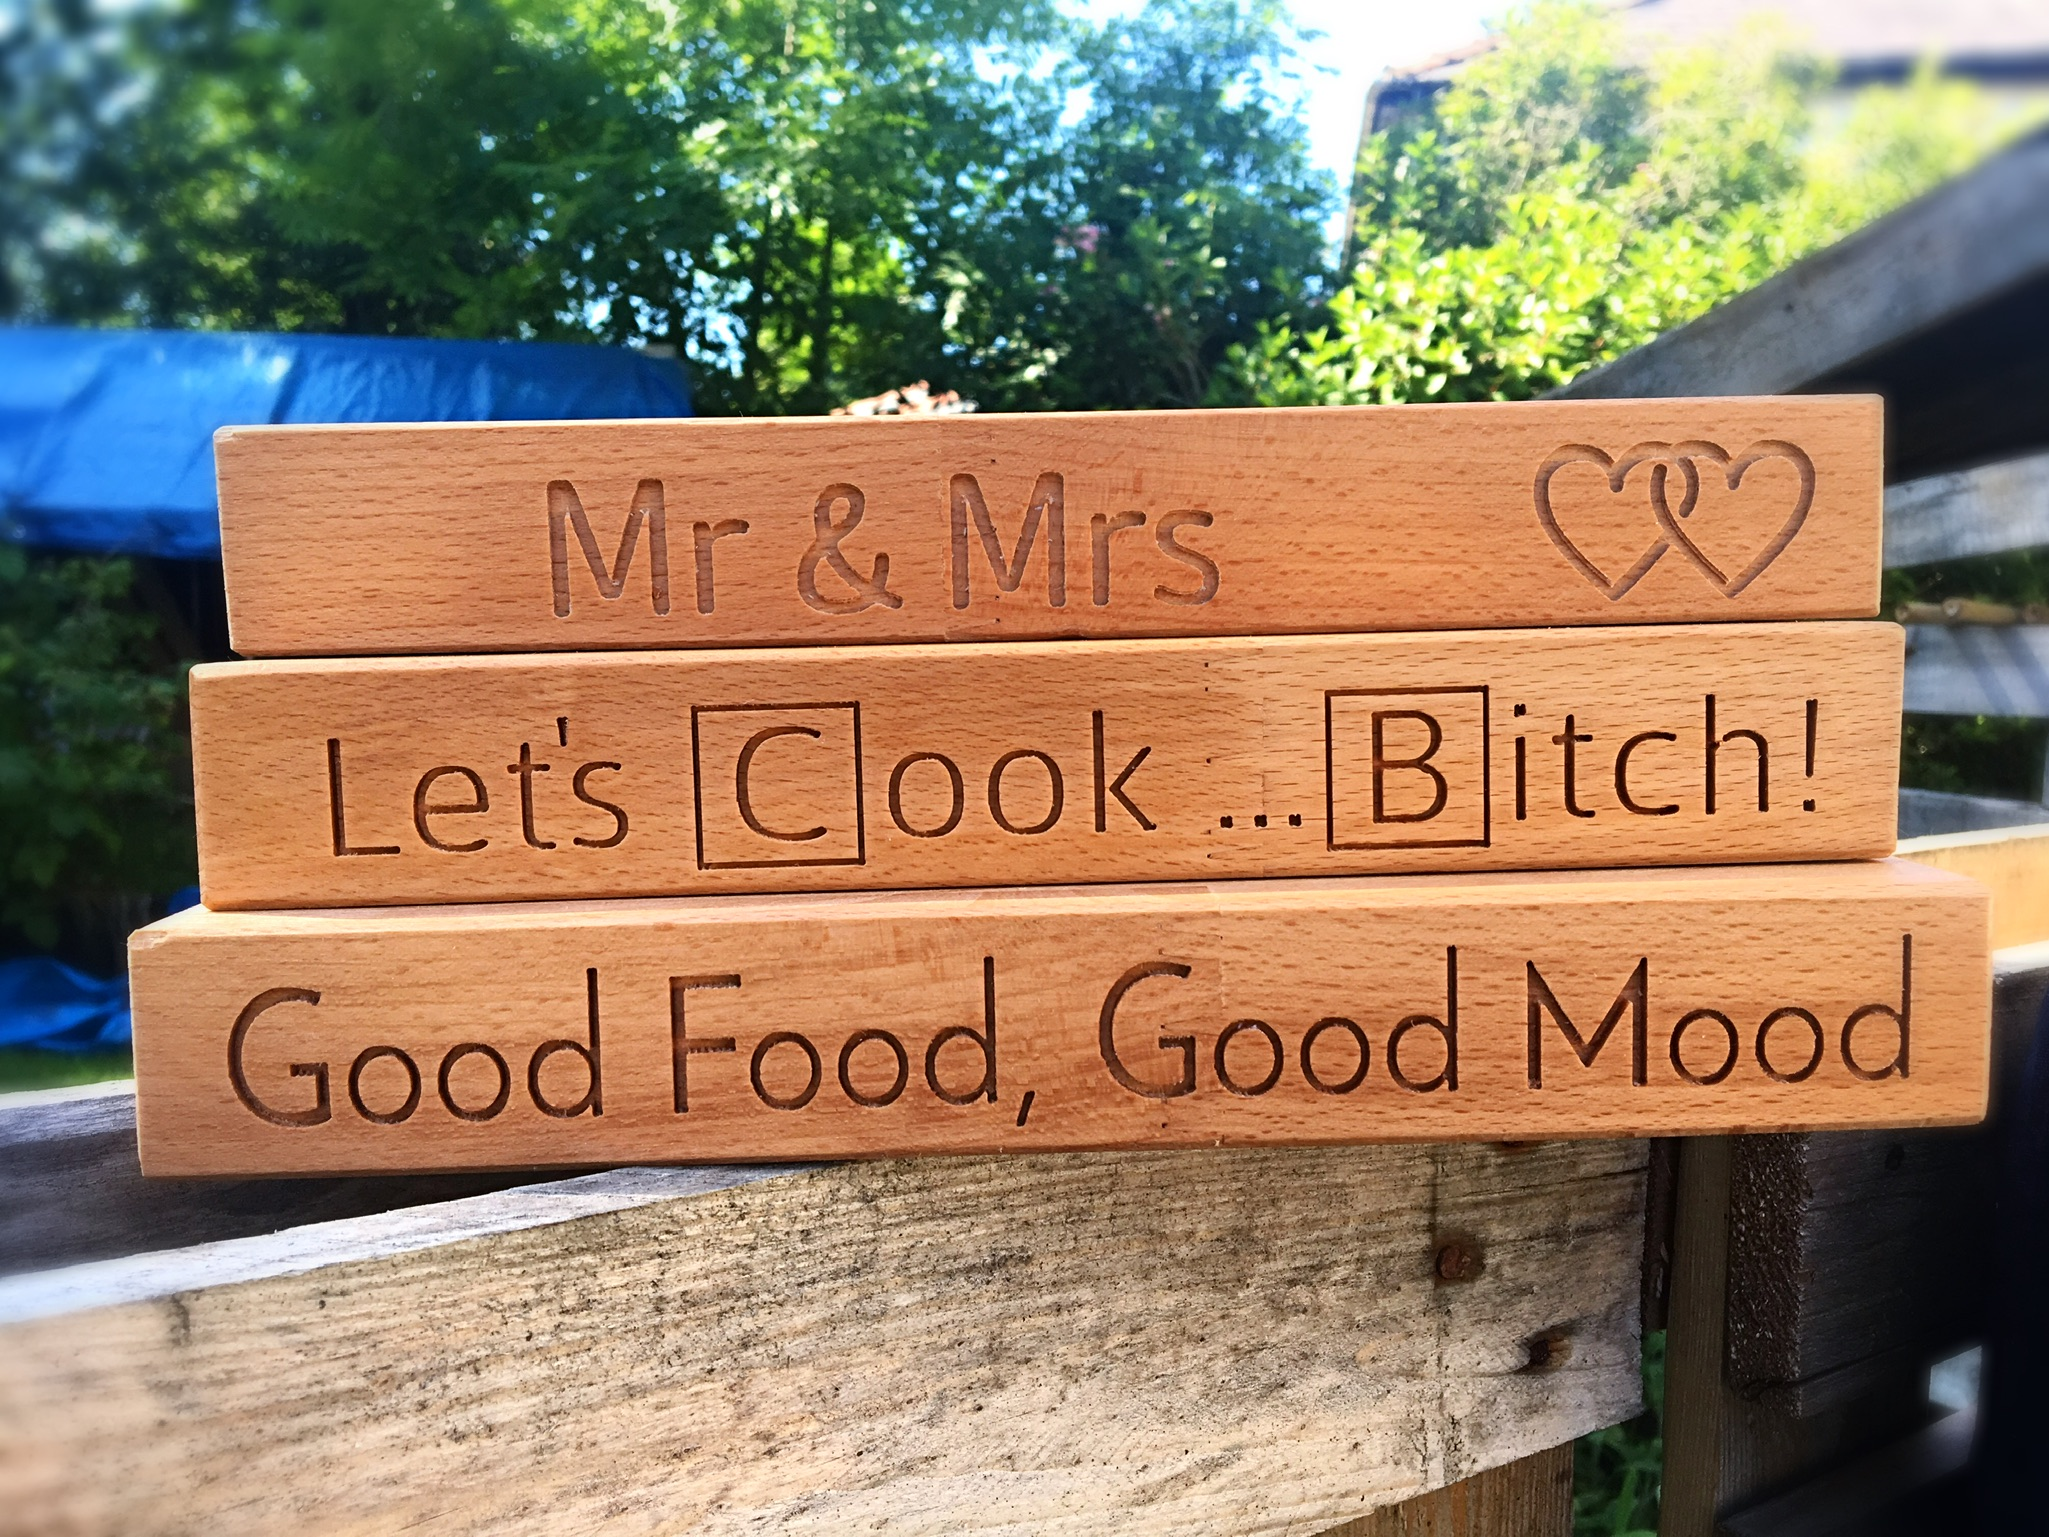 Here is just a small example of the variety of engraving styles and ideas that we have completed for customers along the way. We can engrave a variety of images, logos, brands and text on our chopping boards and majority of other products, as well as bespoke items. Birthday messages, special quotes, meaningful lyrics, coordinates of first meeting places, wedding and anniversary dates - you name it we can engrave it!   Enquire today  so that we can help to make your ideas a reality!